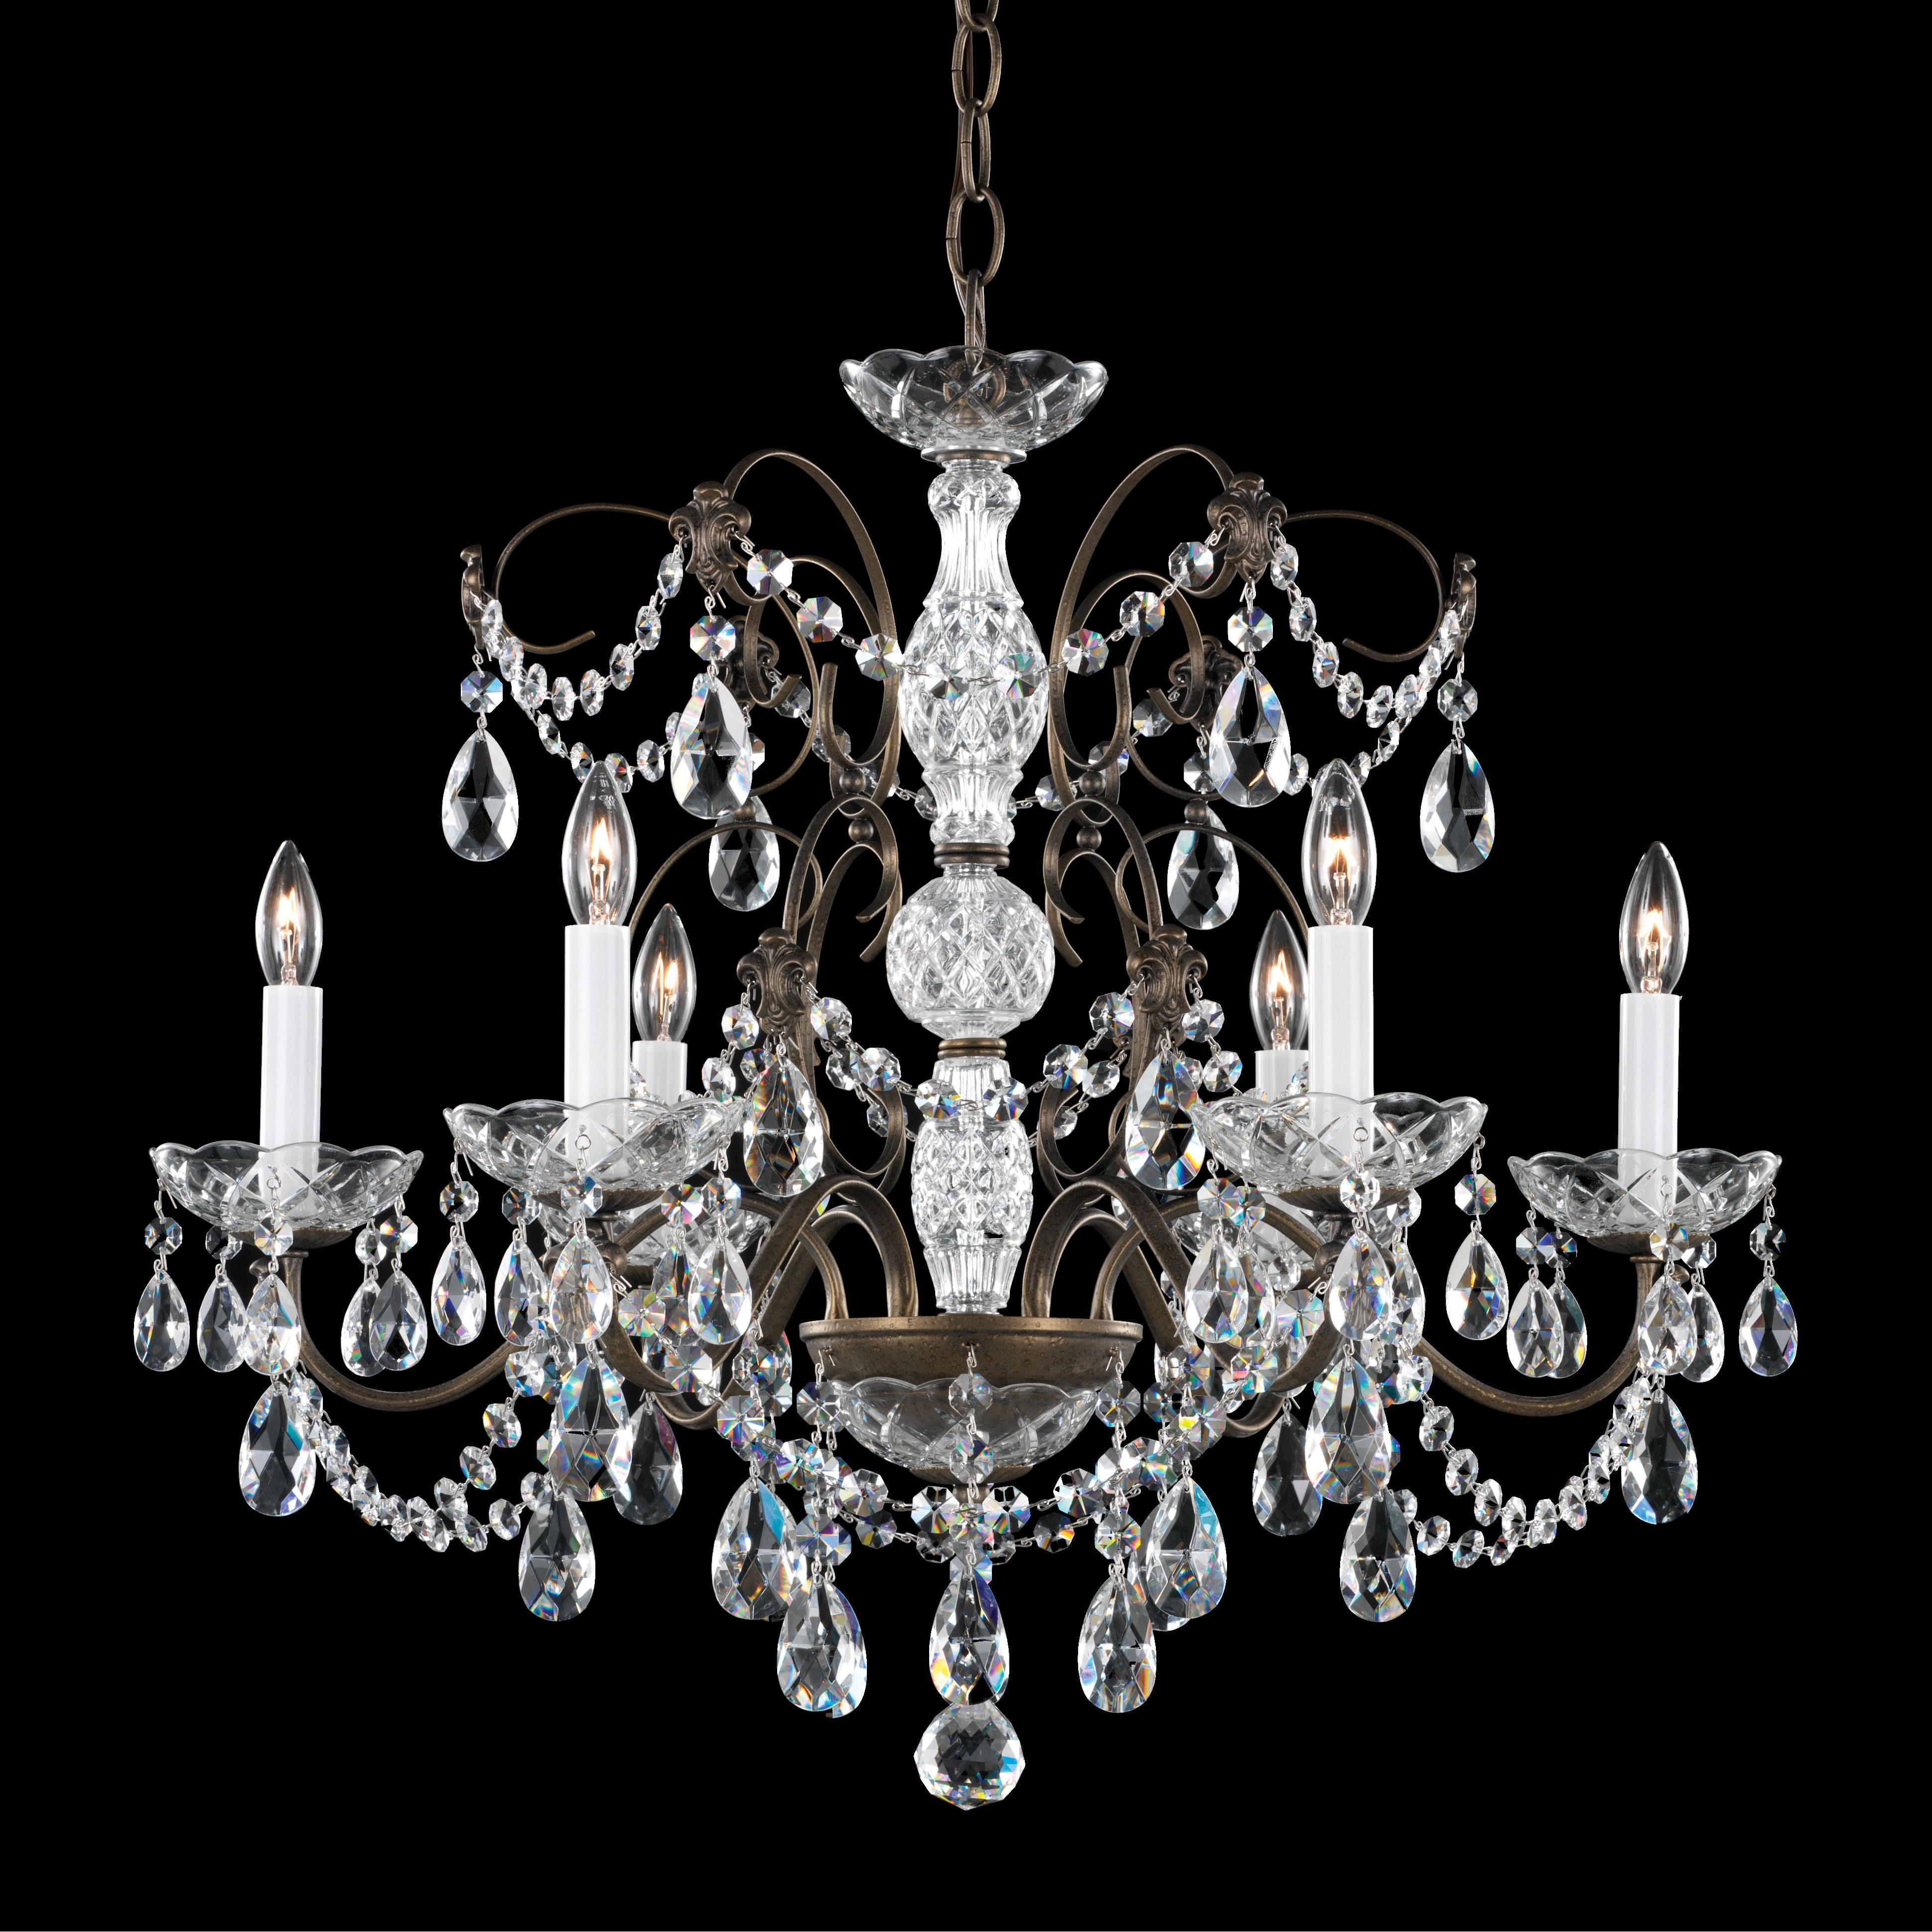 pinterest light pin crystal products beaded mini chandelier tiffany chandeliers